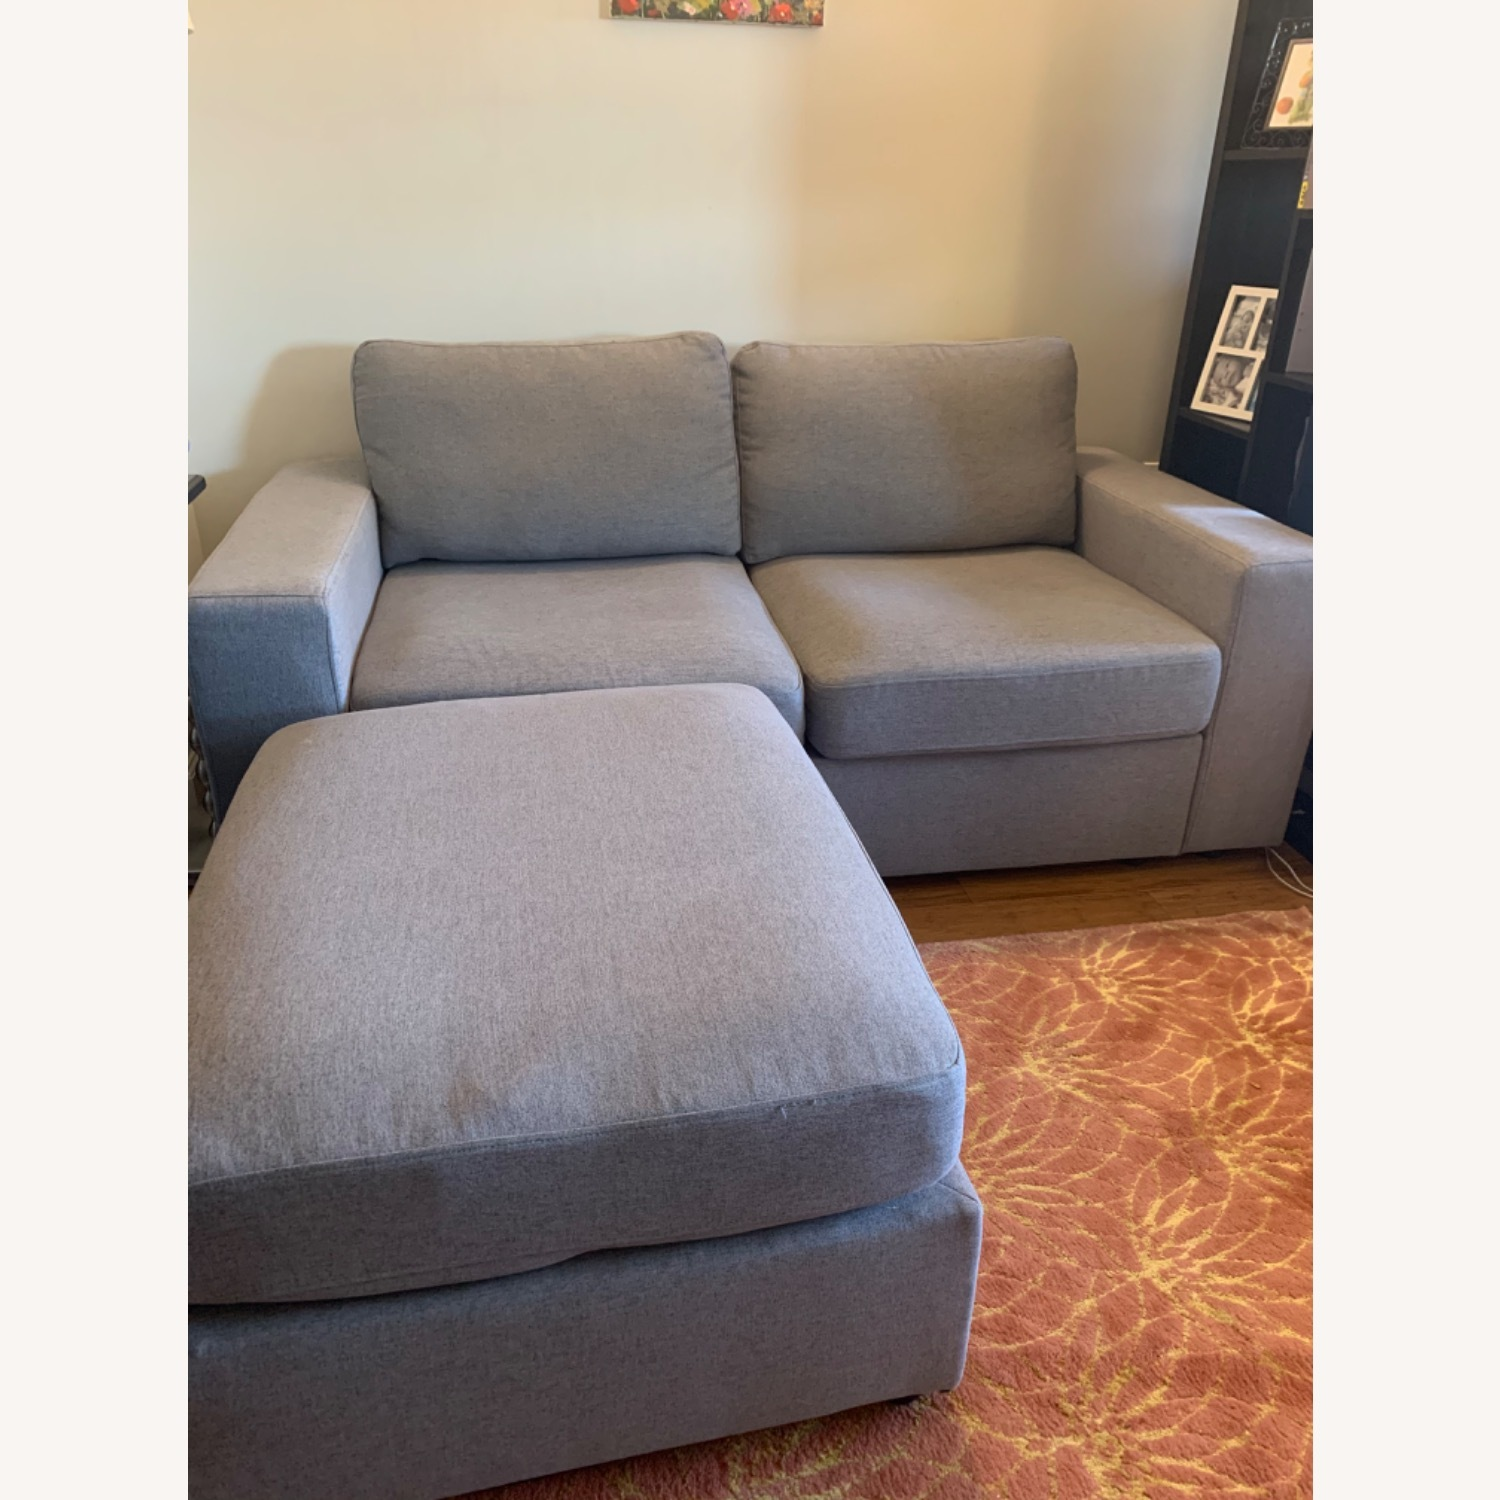 Wayfair Gosnell Reversible Loveseat & Ottoman - image-3